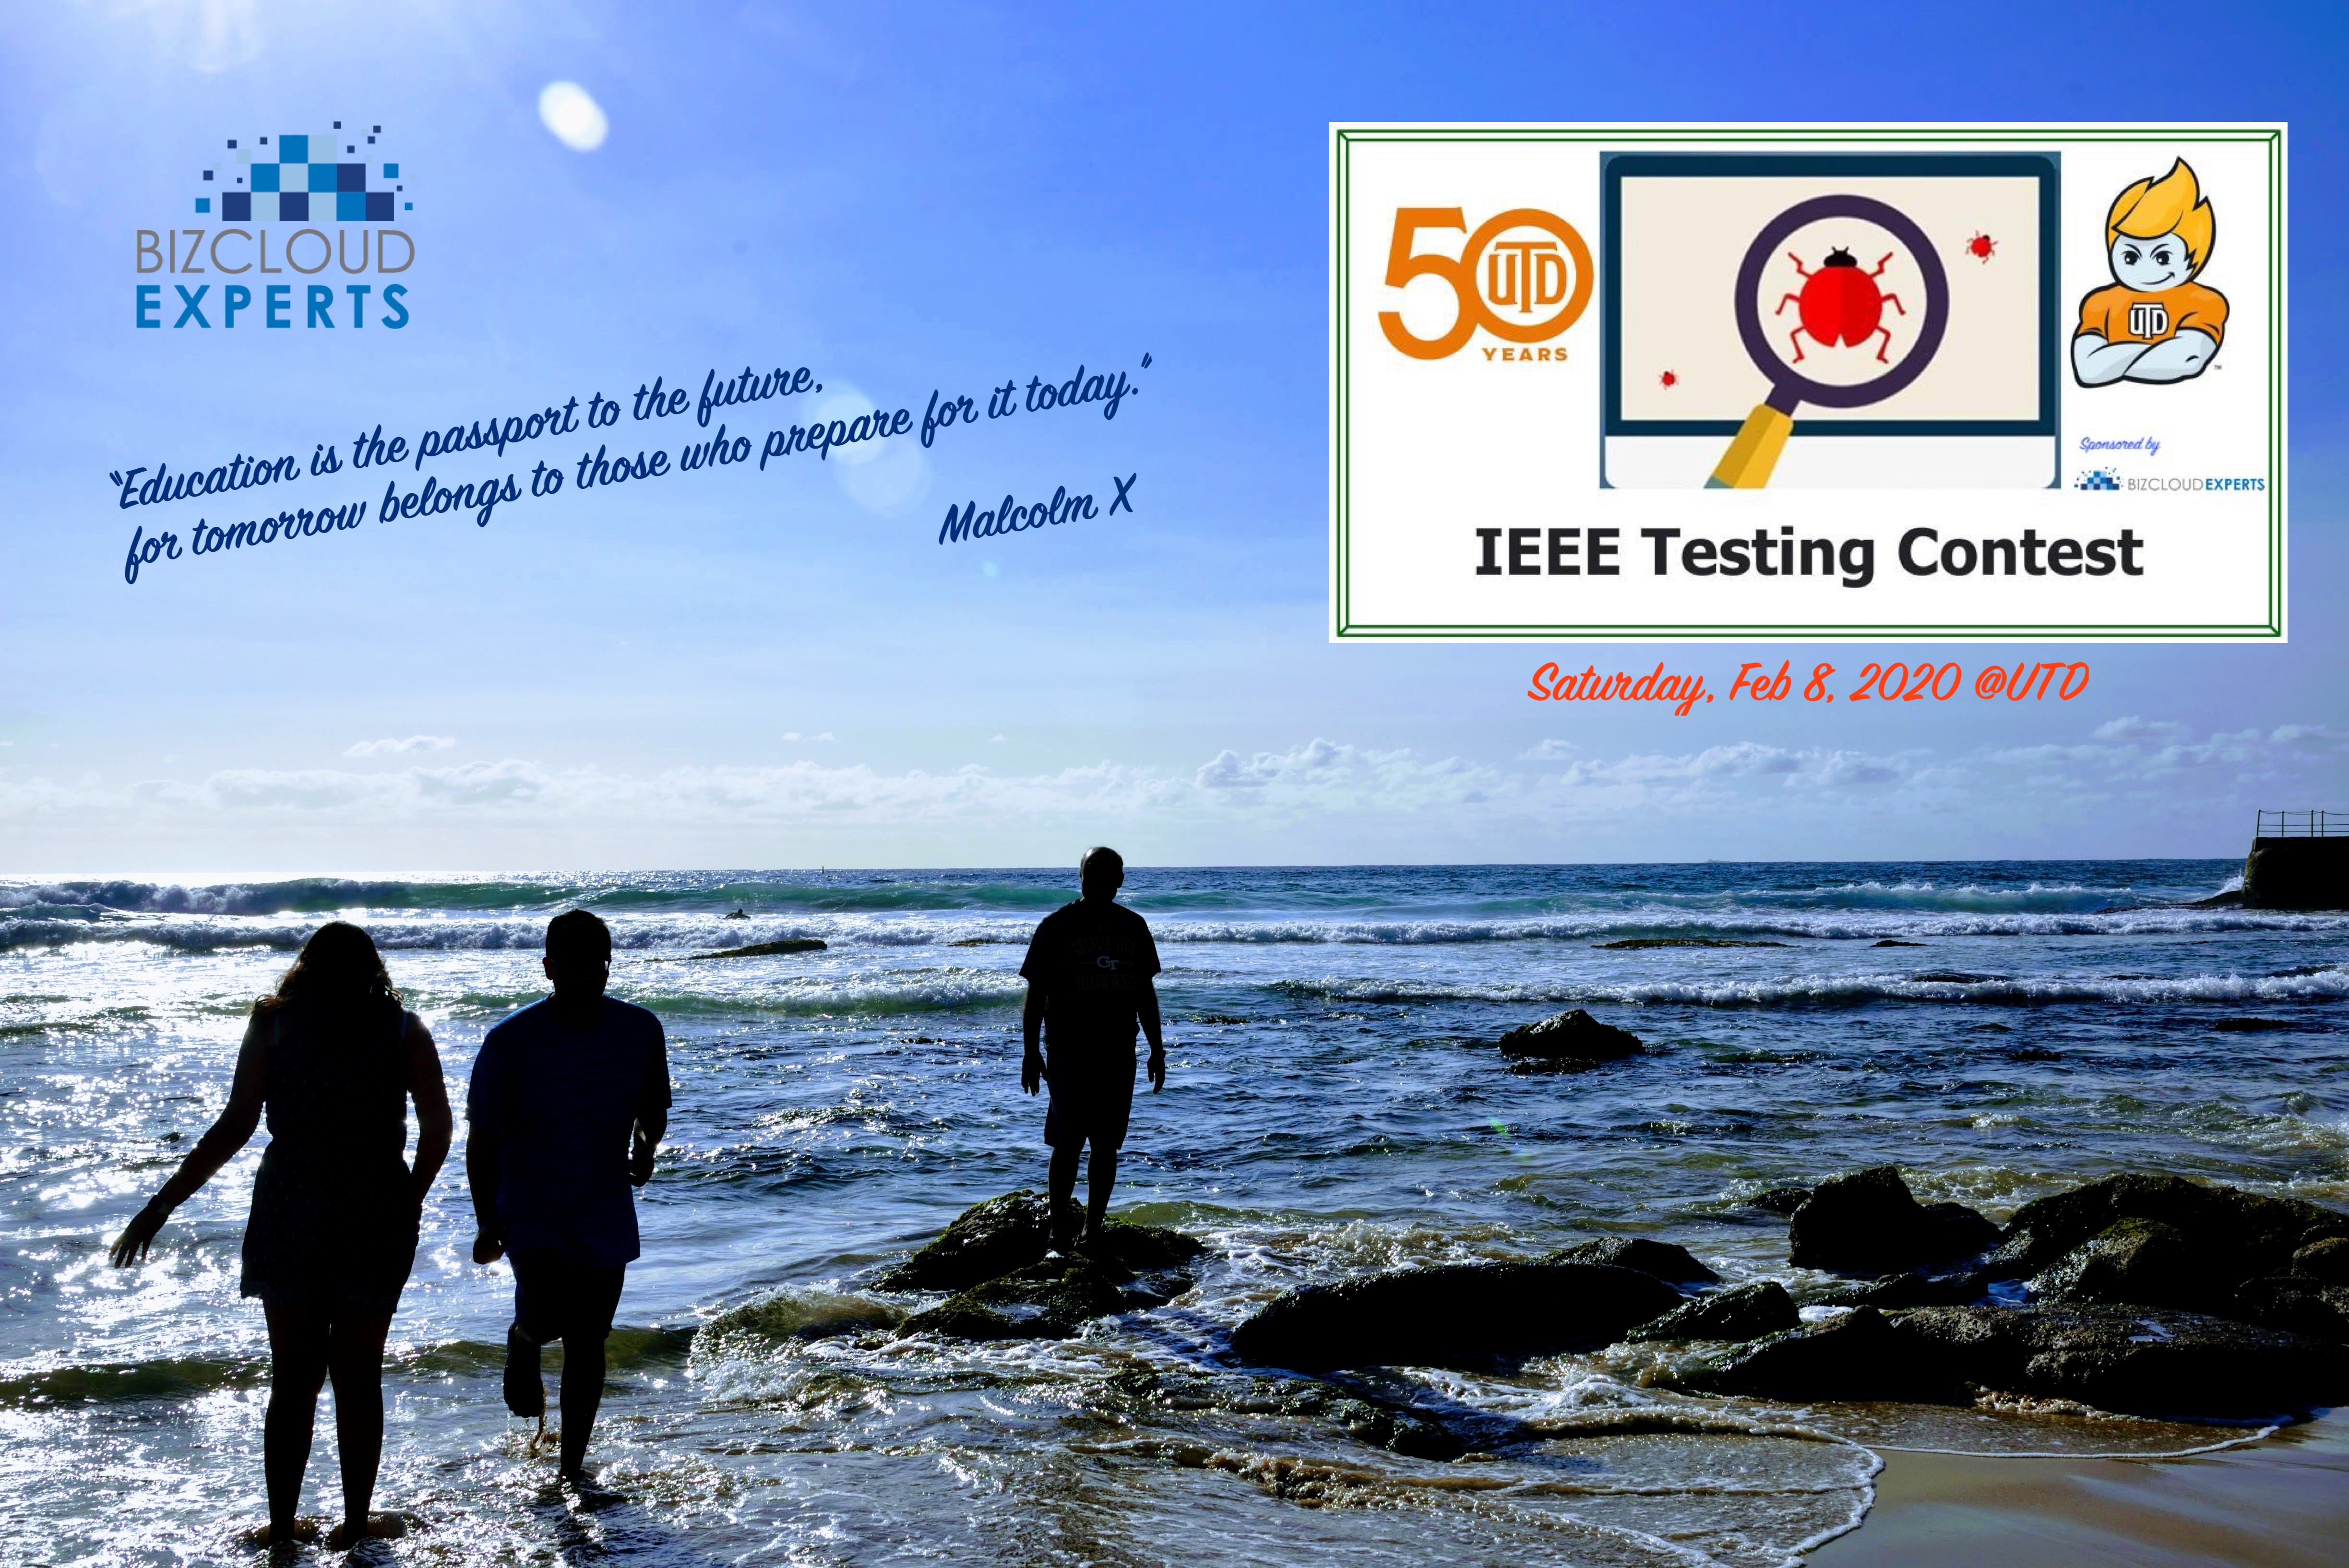 IEEE Testing Contest